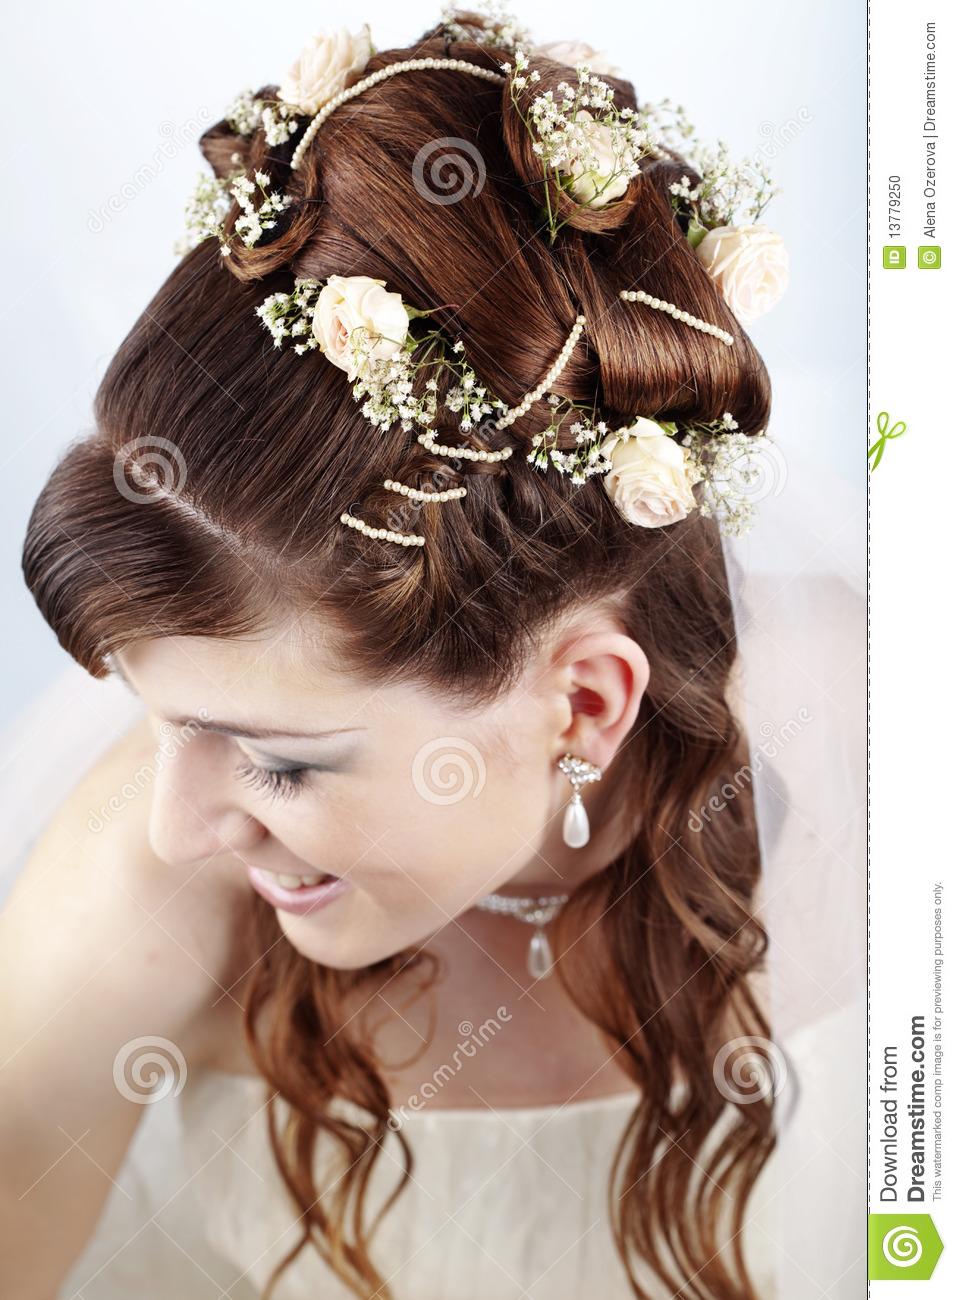 Awesome Bridal Hairstyle Stock Photo Image 13779250 Hairstyles For Women Draintrainus